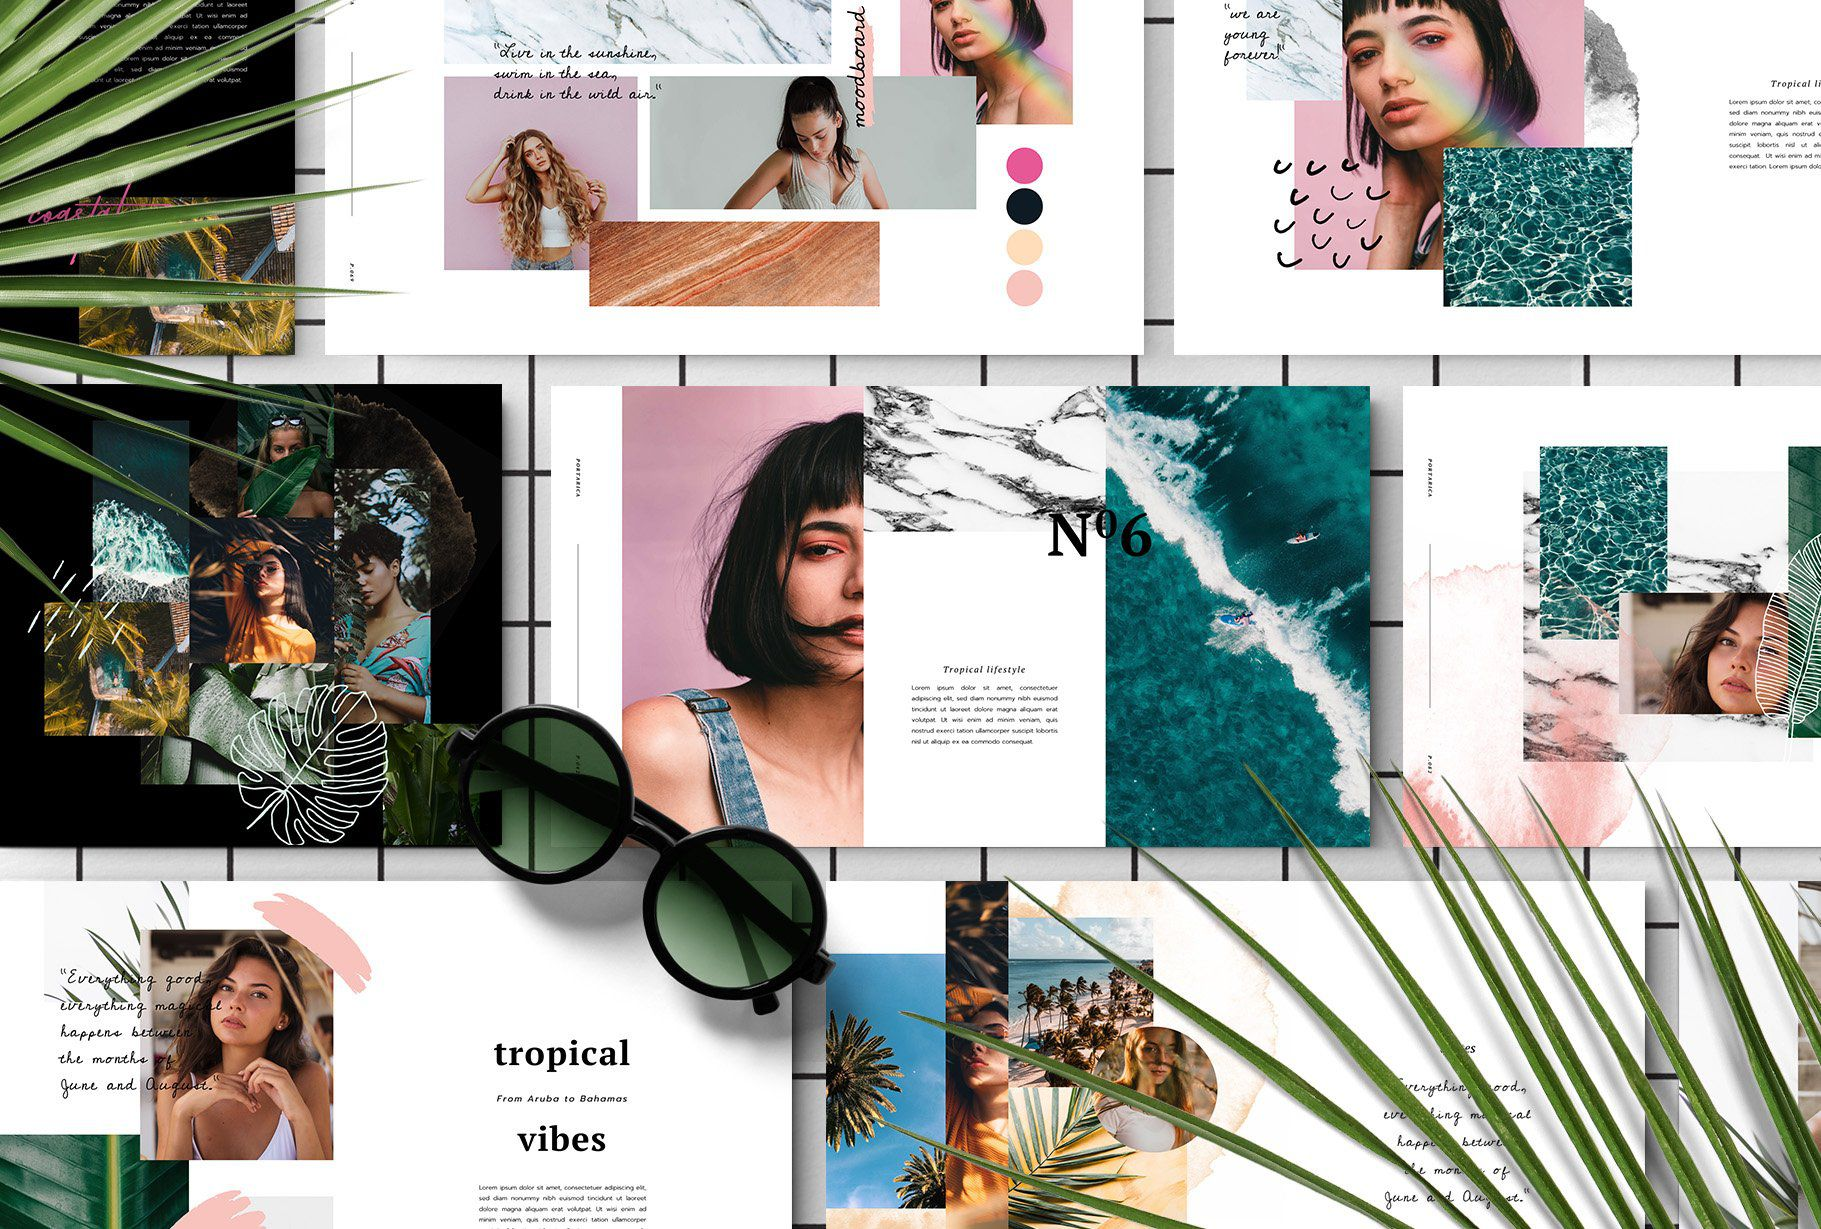 005 Best Free Photo Collage Template For Powerpoint Highest Clarity Full